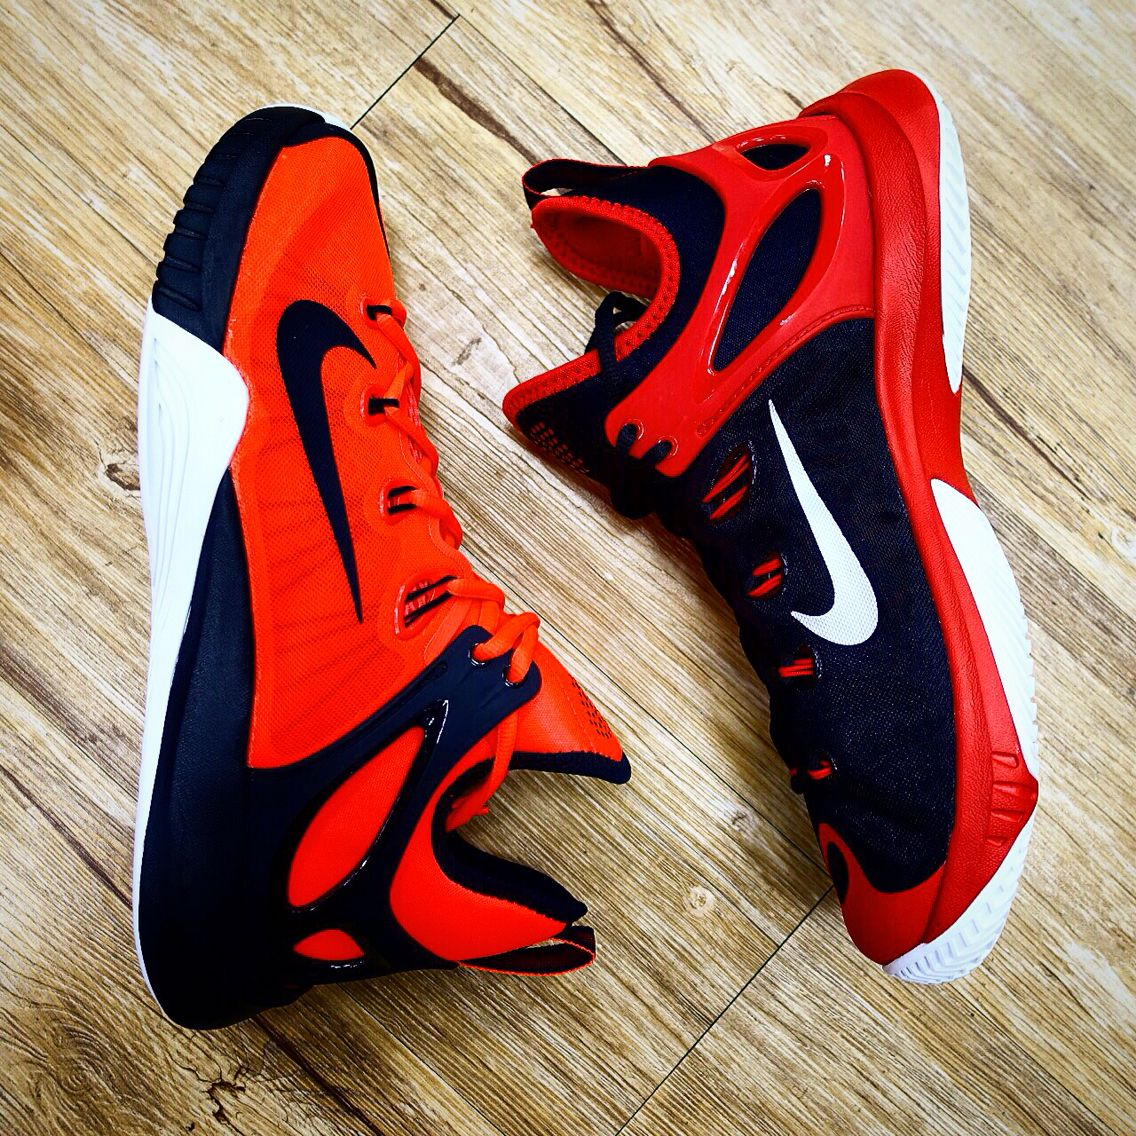 cheap for discount 0616d 834d2 We are ready for the comeback of Paul George,so do Nike.